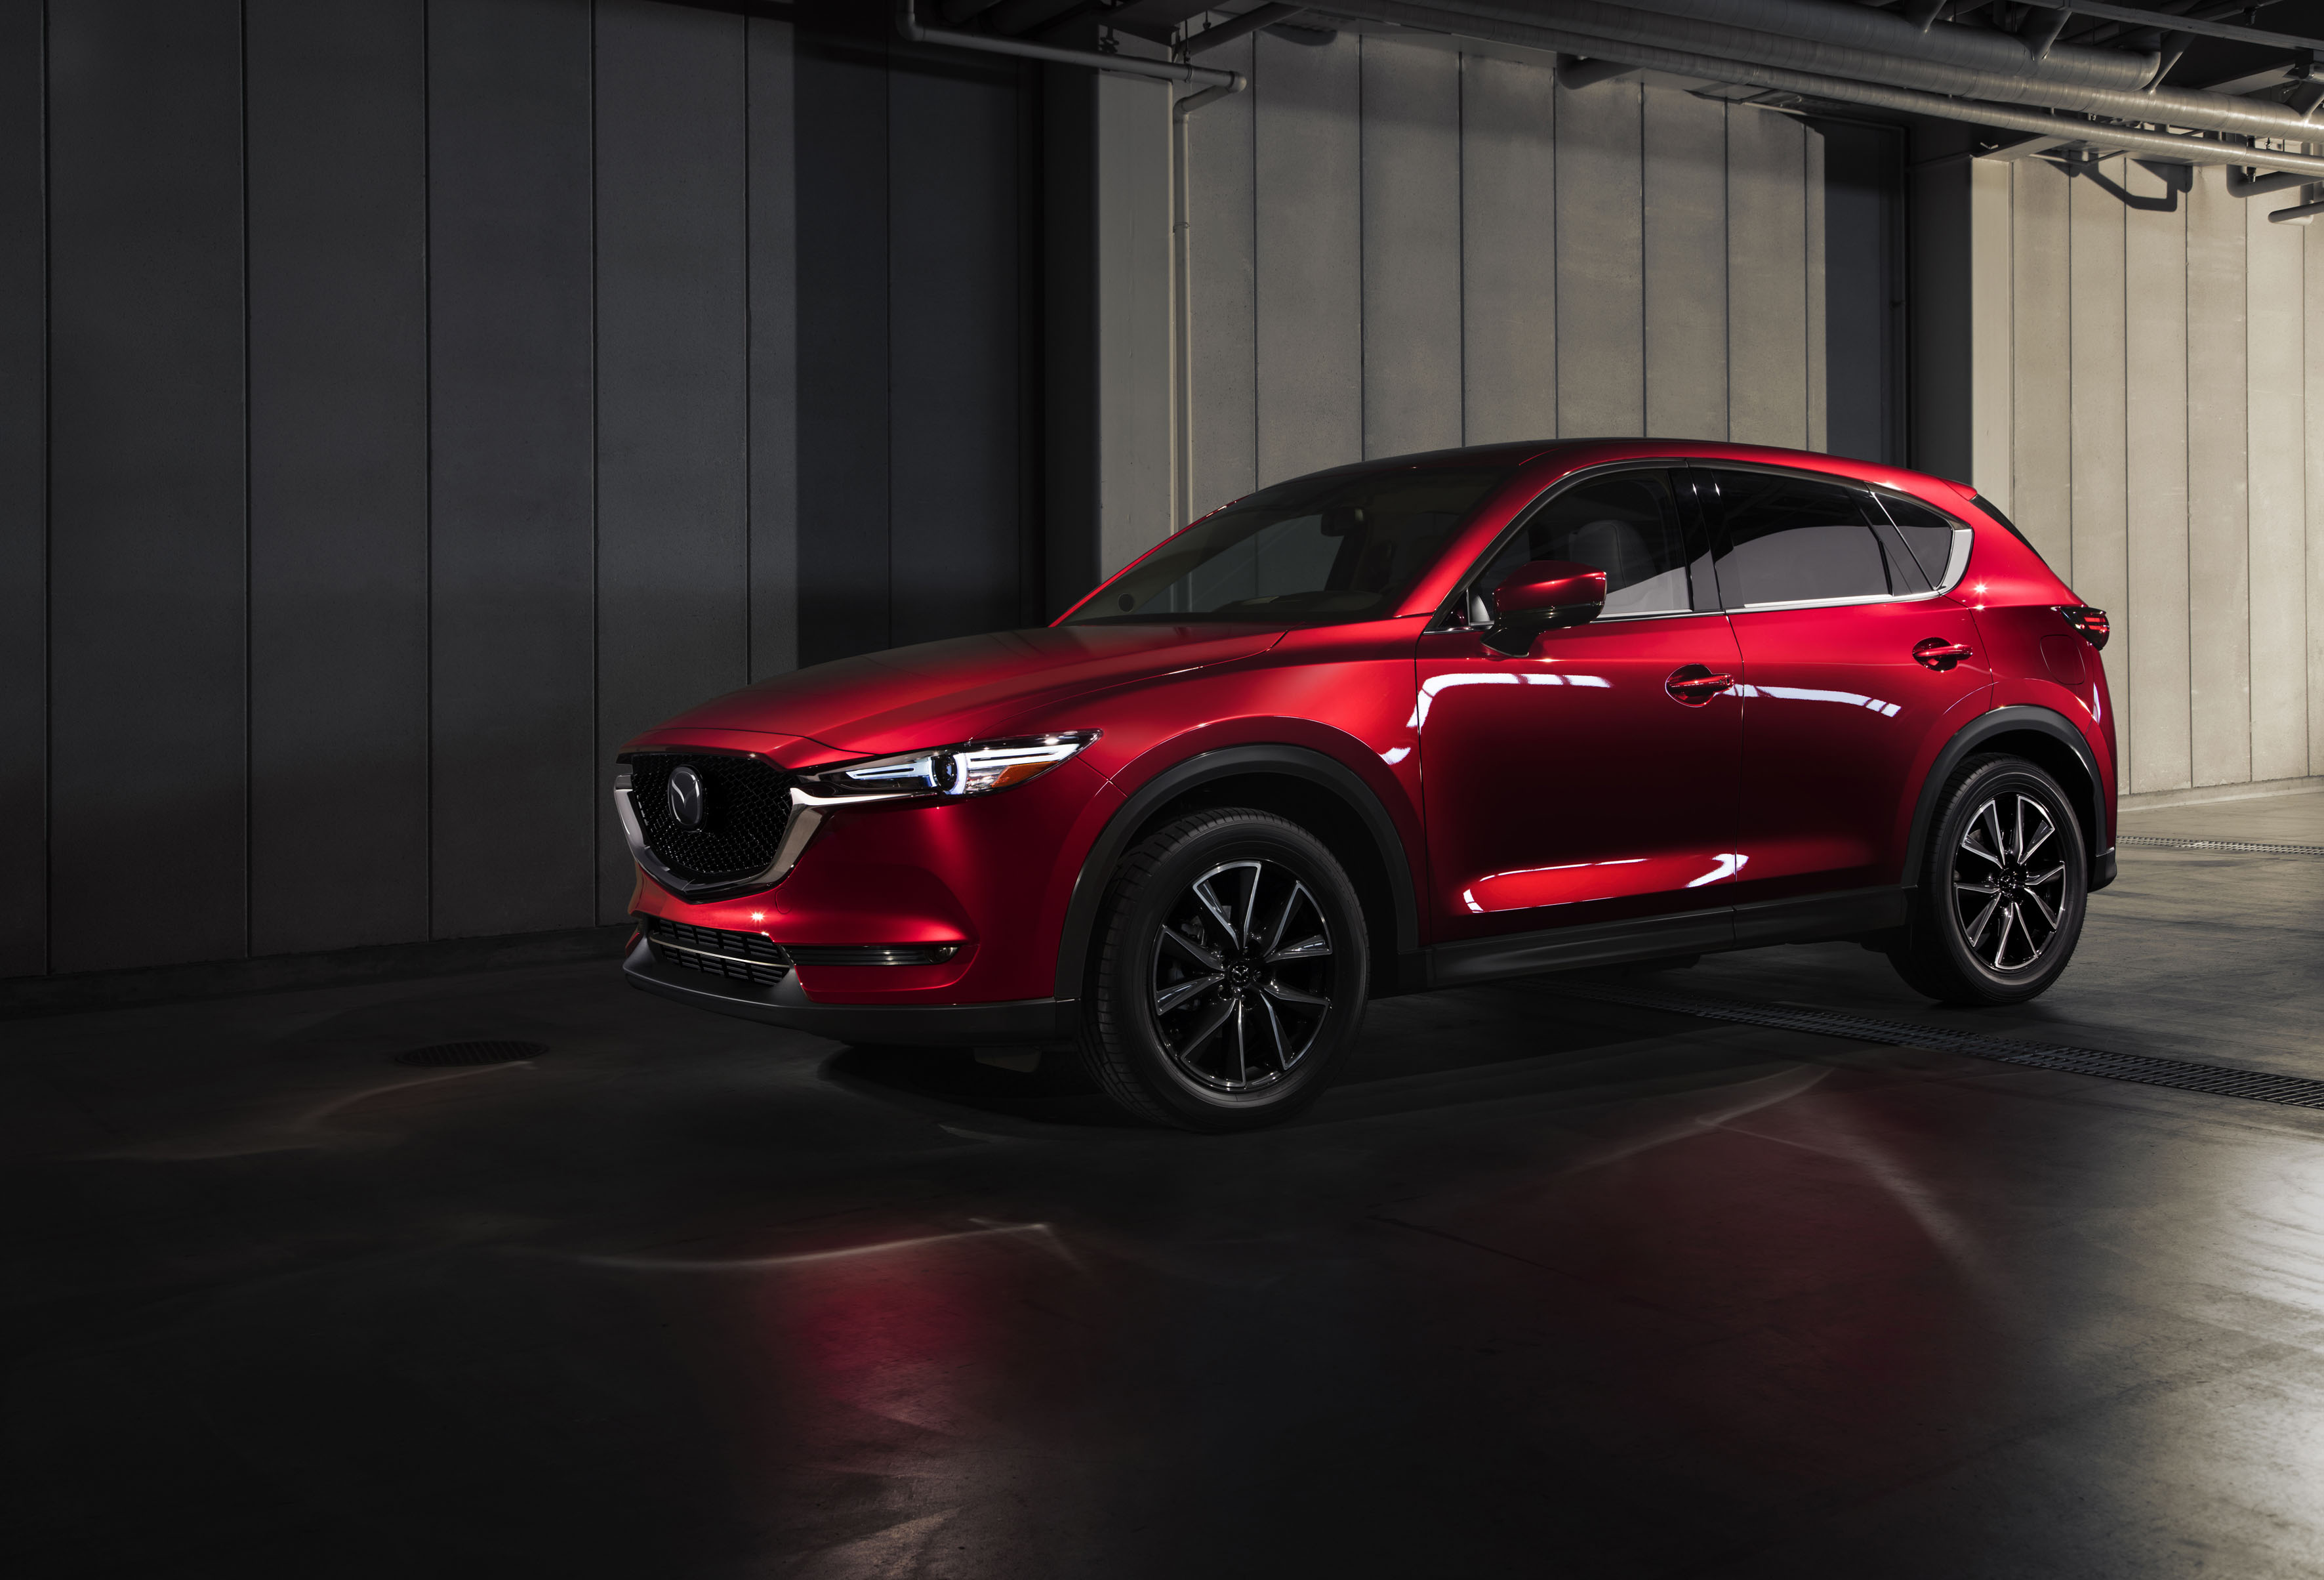 New Mazda Cx 5 To Gain Seven Seat Option Report Caradvice